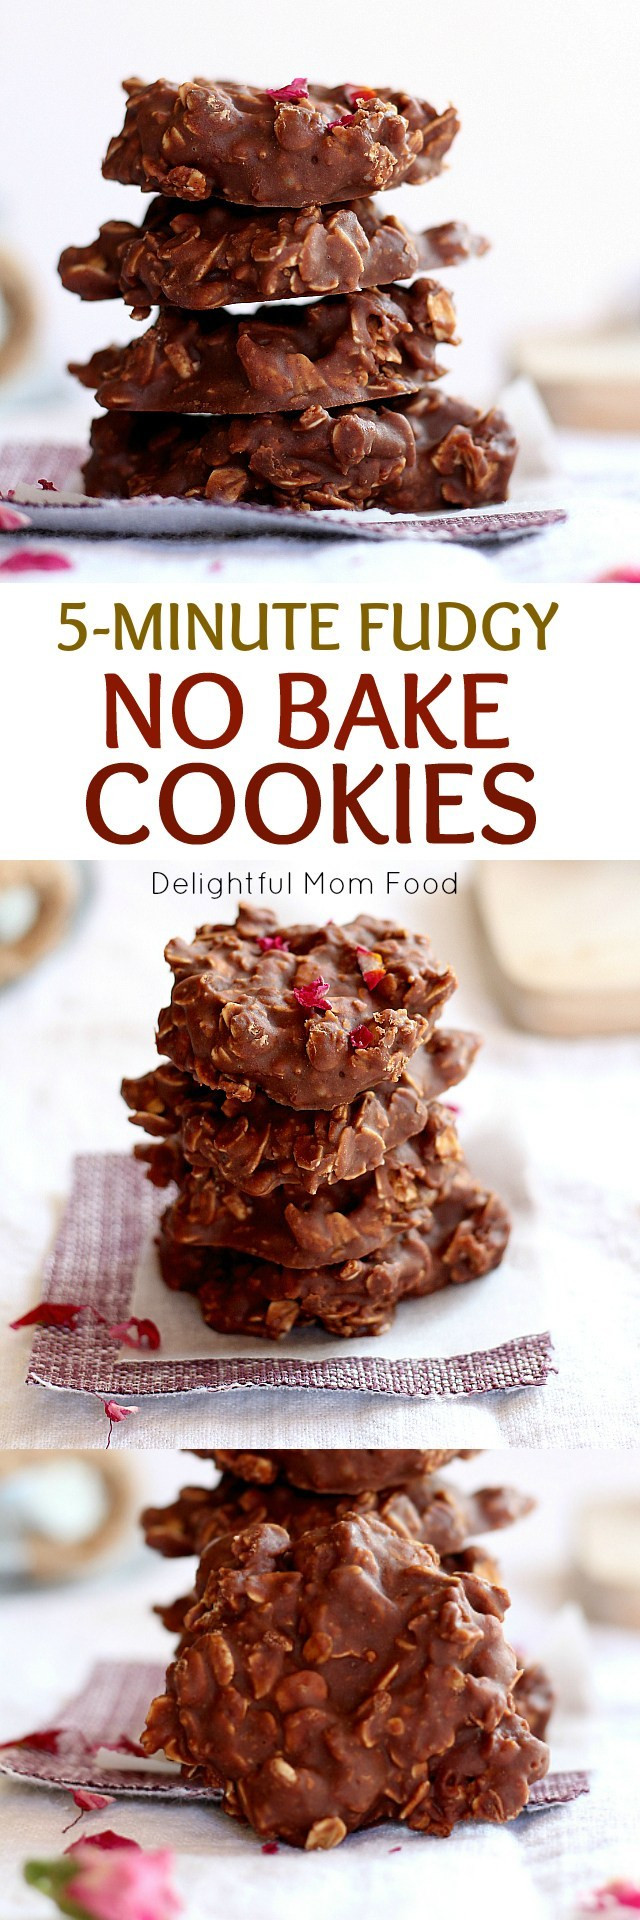 Healthy No Bake Chocolate Peanut Butter Oatmeal Cookies  Fudgy Chocolate Peanut Butter Oatmeal No Bake Cookies